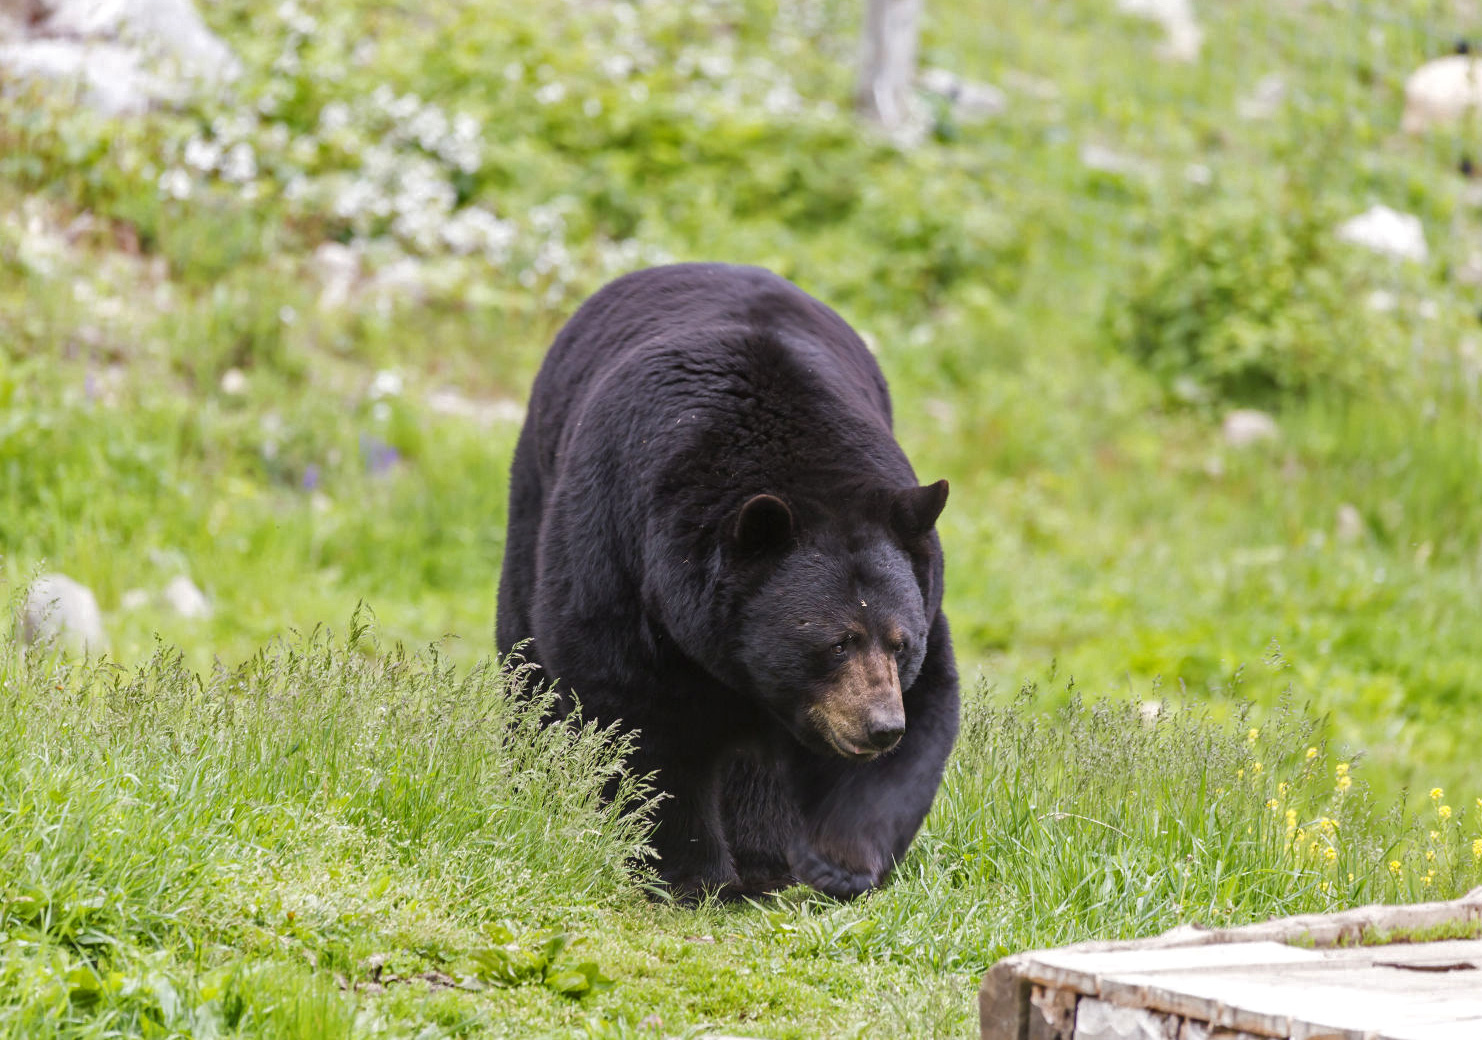 Bear Hunting - Our bear hunts are fully guided and include accommodations, boat, motor, gas, Active bait stations, and retrieval assistance.